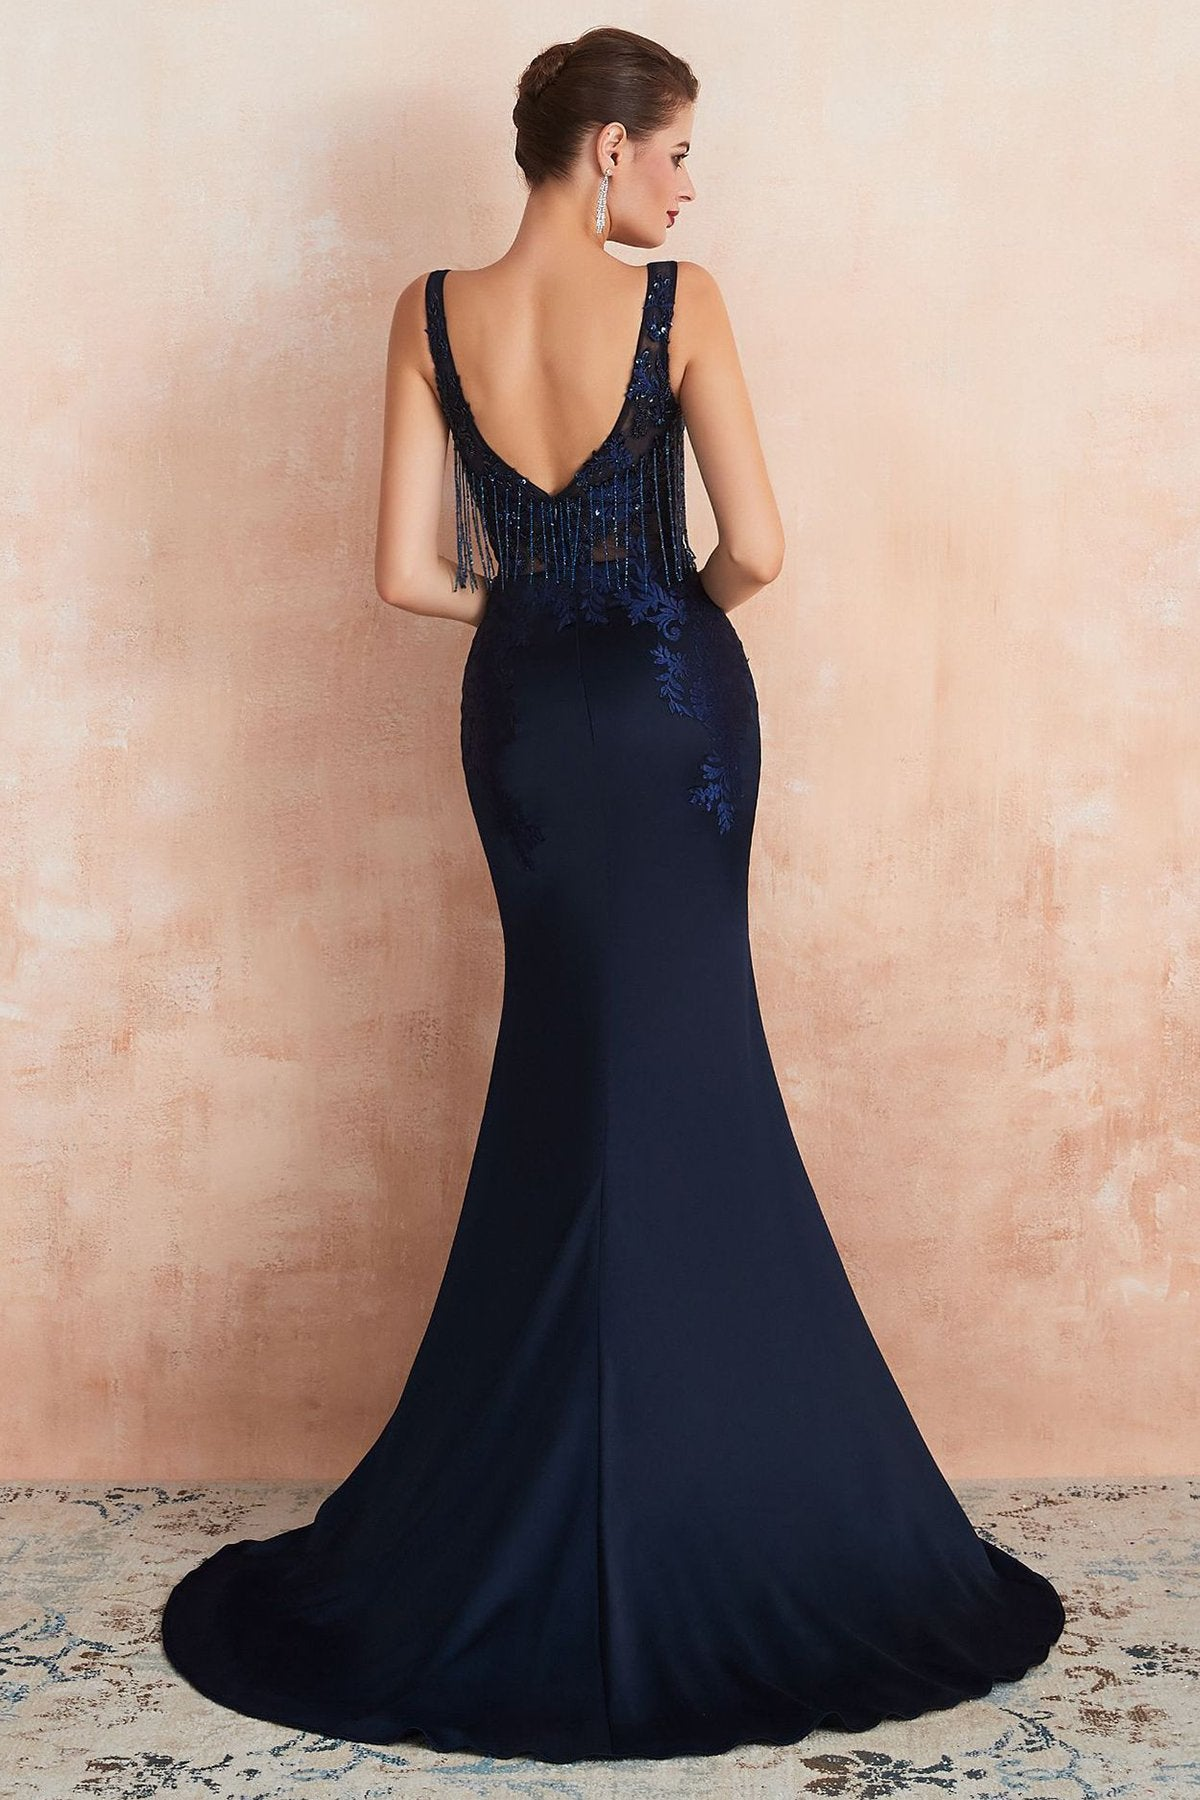 V-Back Sexy Fringe Navy Blue Evening Dress Evening Dresses